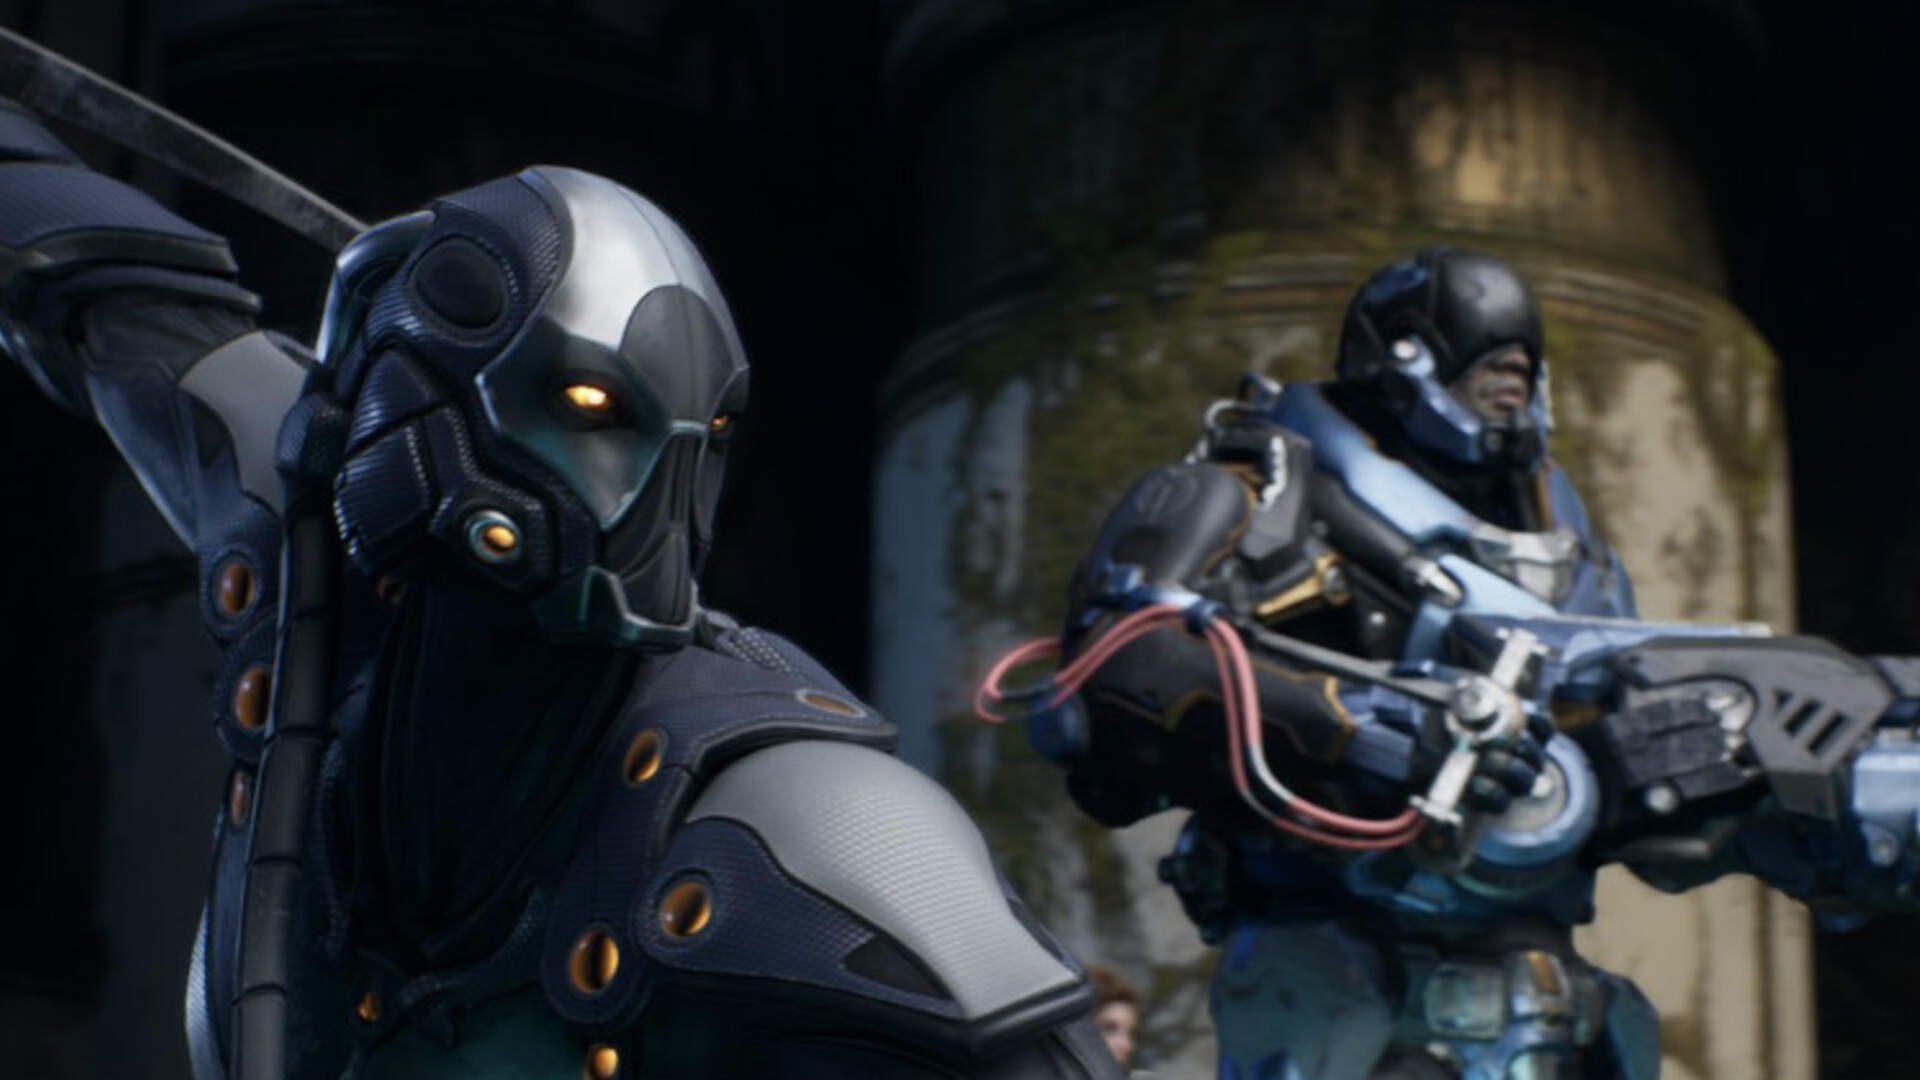 Epic's Paragon is Free-To-Play, But Early Access Will Cost You